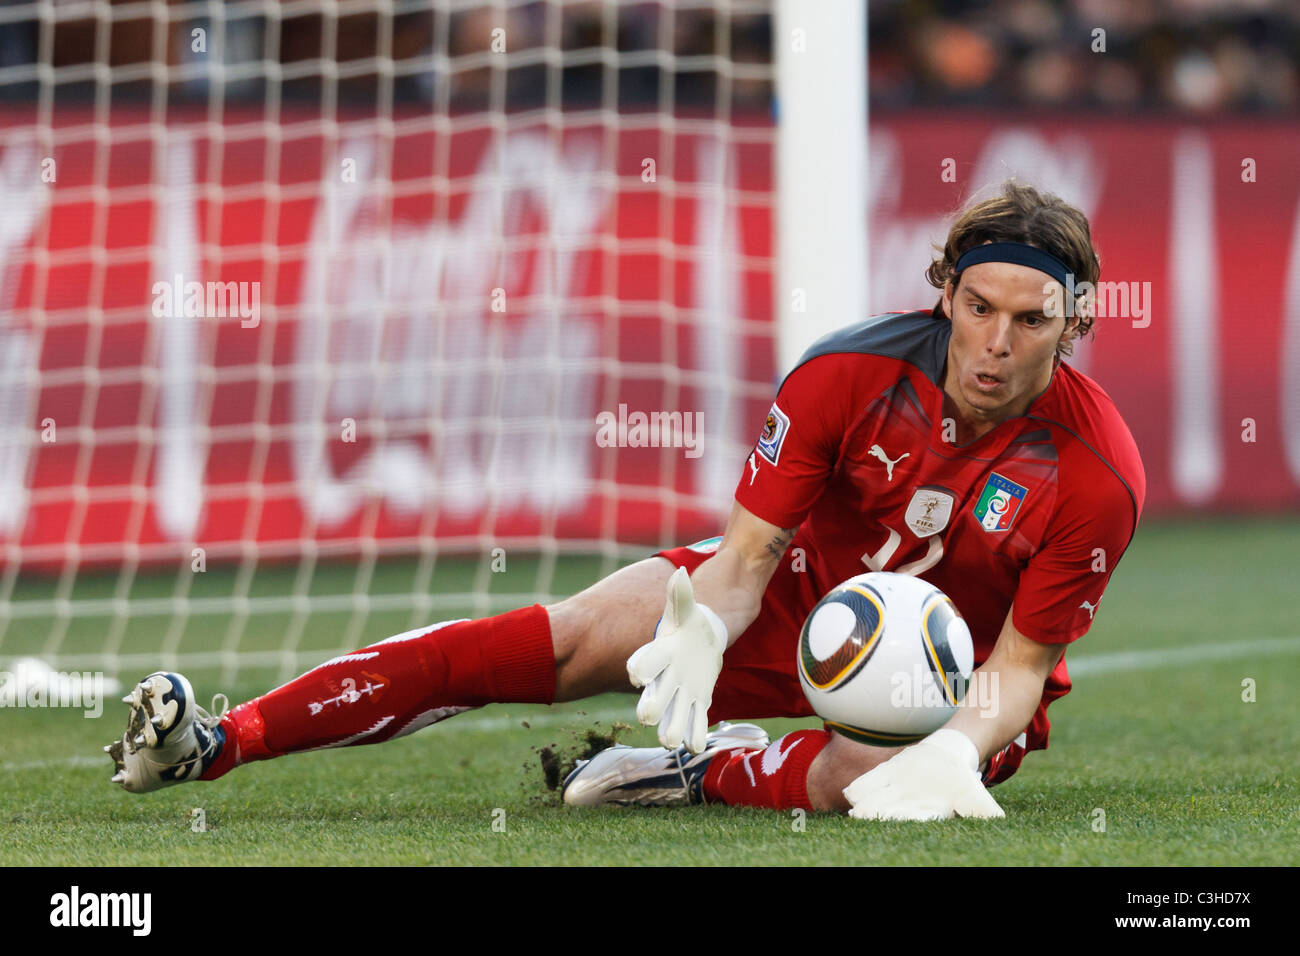 Italy goalkeeper Federico Marchetti makes a save during a 2010